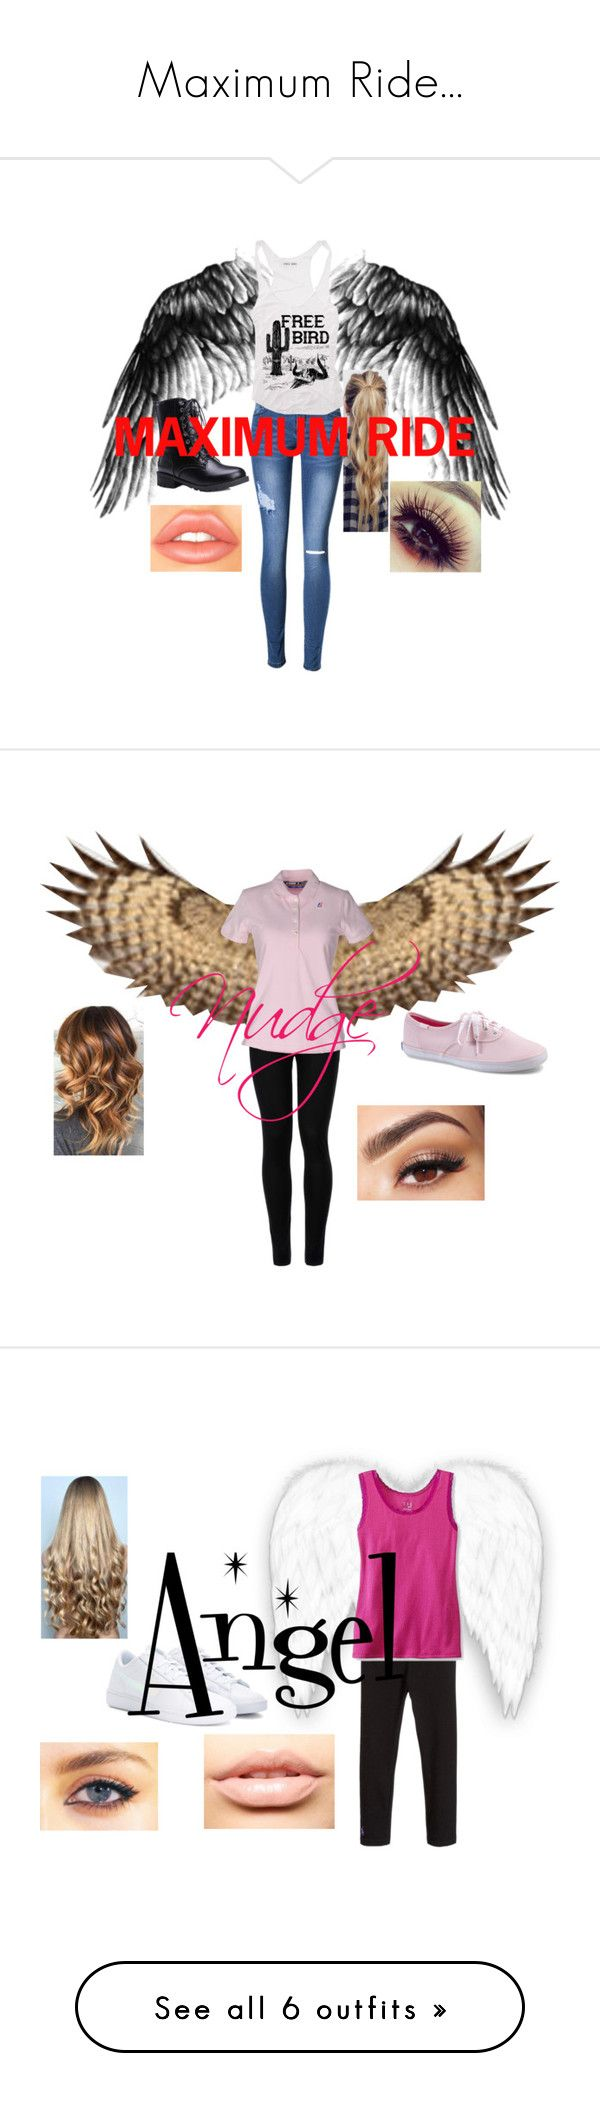 """""""Maximum Ride..."""" by lola0413 ❤ liked on Polyvore featuring Wolford, K-Way, Keds, Disney, Lancôme, NIKE, WigYouUp, MDMflow, Joseph and Urban Pipeline"""